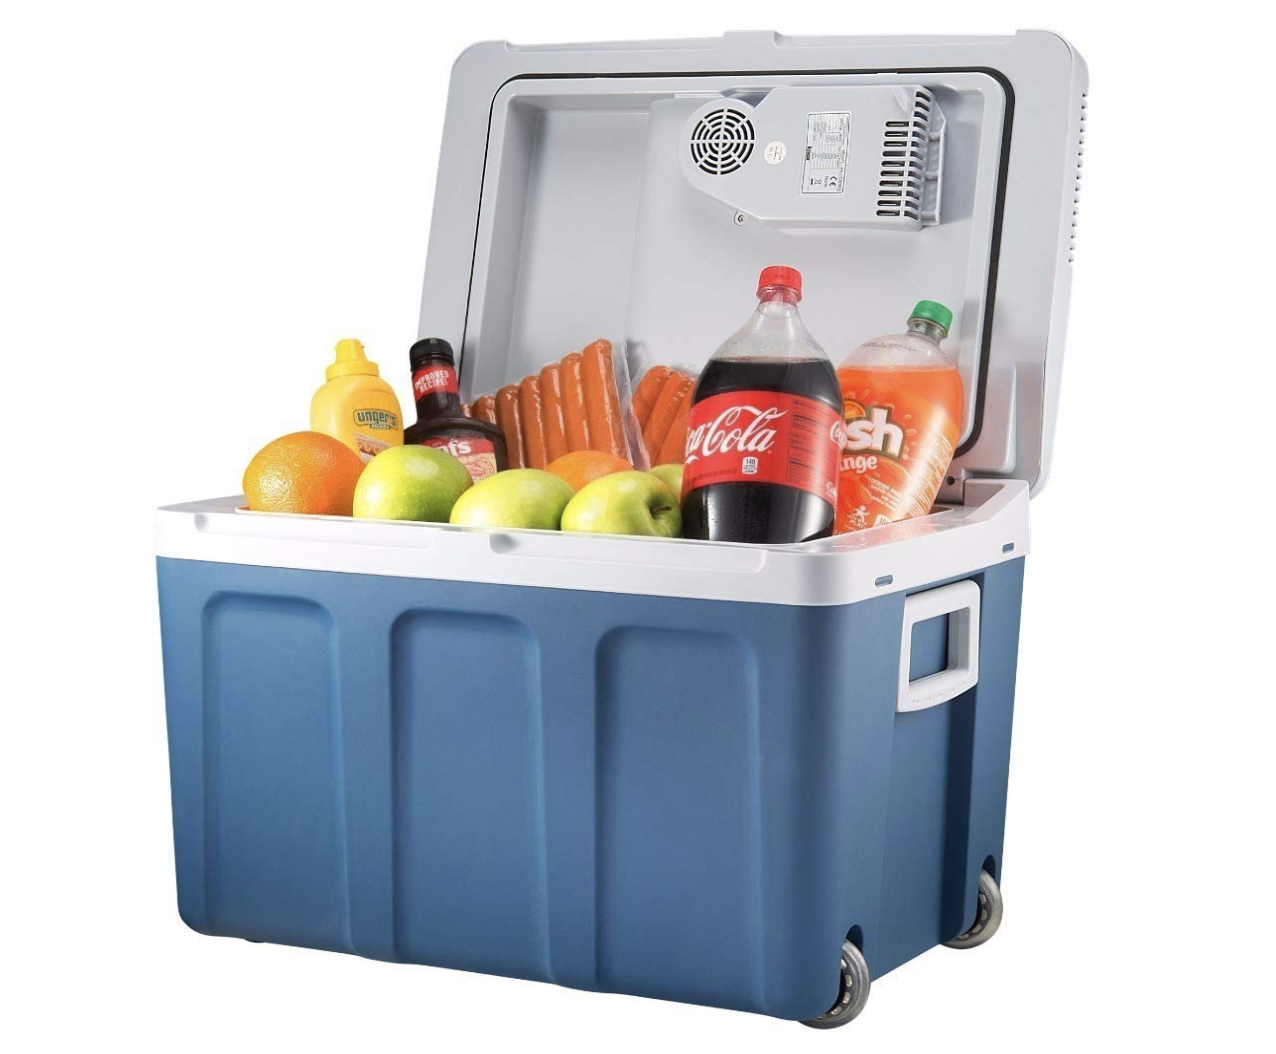 7. Knox Electric Cooler and Warmer For Car and Home With Wheels